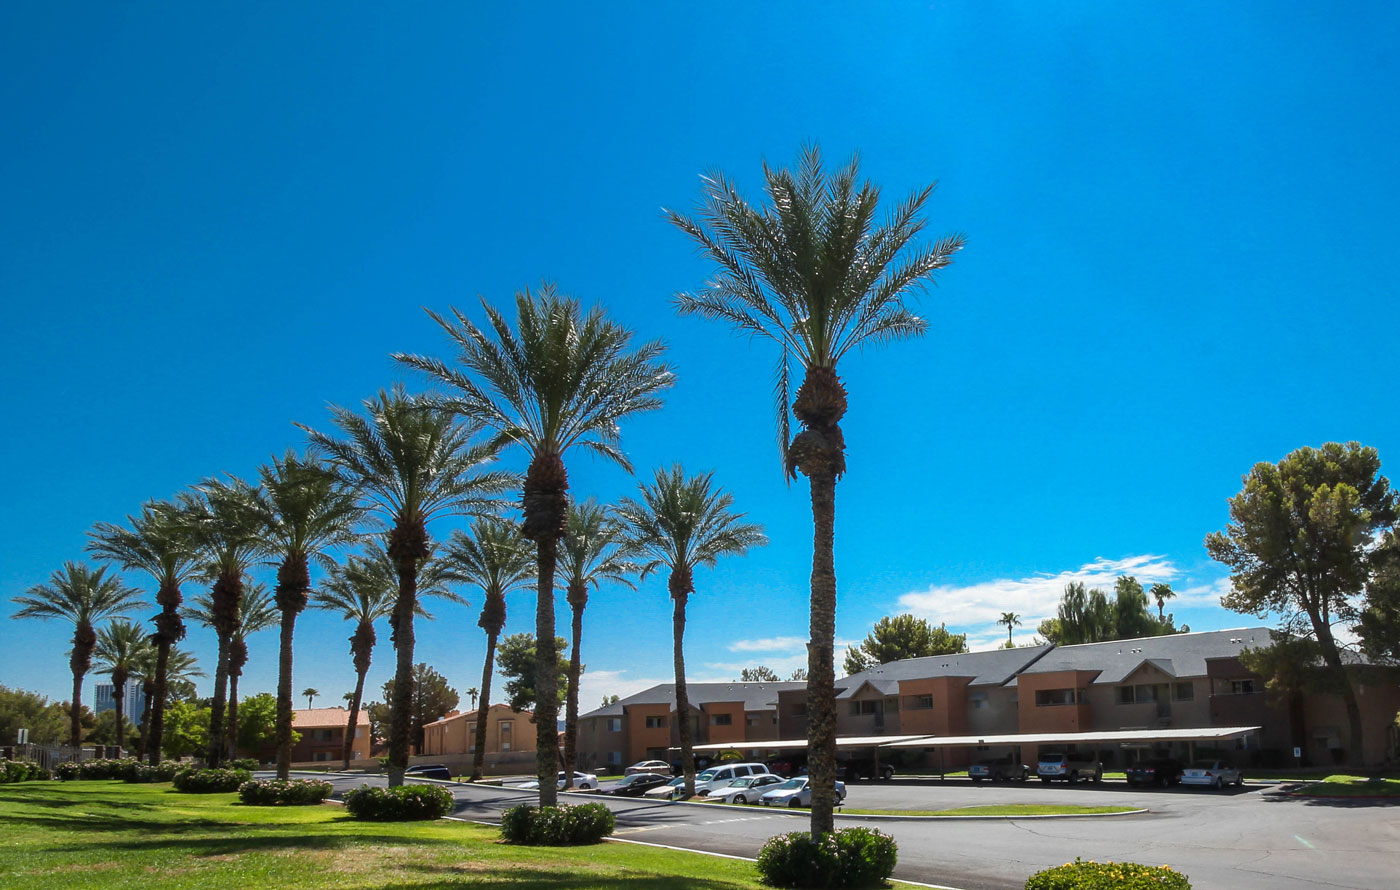 Silver Stream Apartments Parking Lot View with Palm Trees.